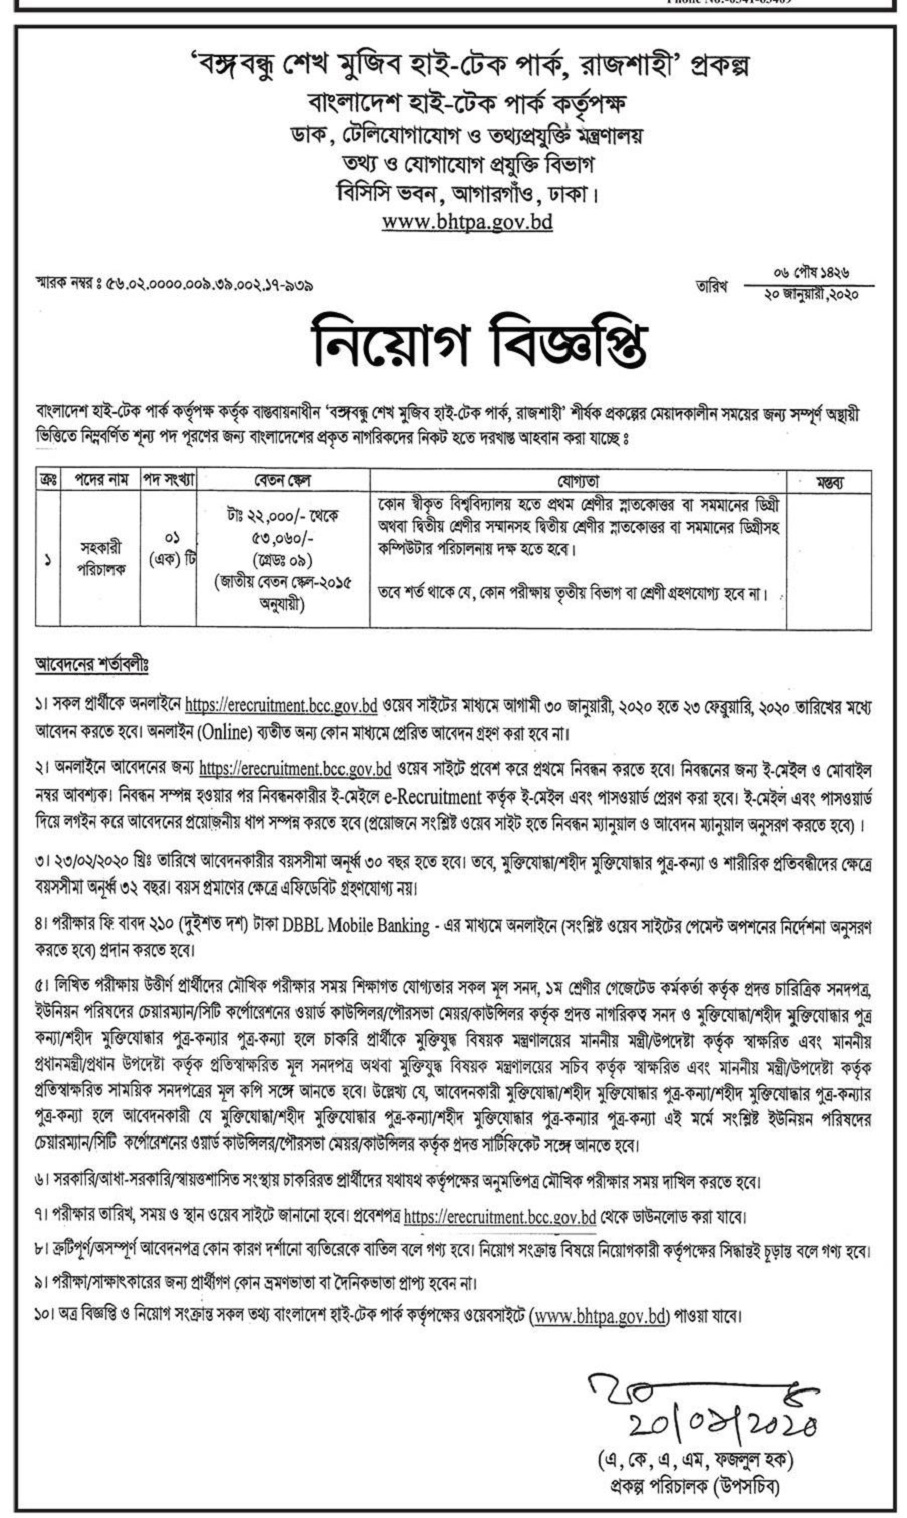 Bangladesh Hi-Tech Park Authority Job Circular 2020